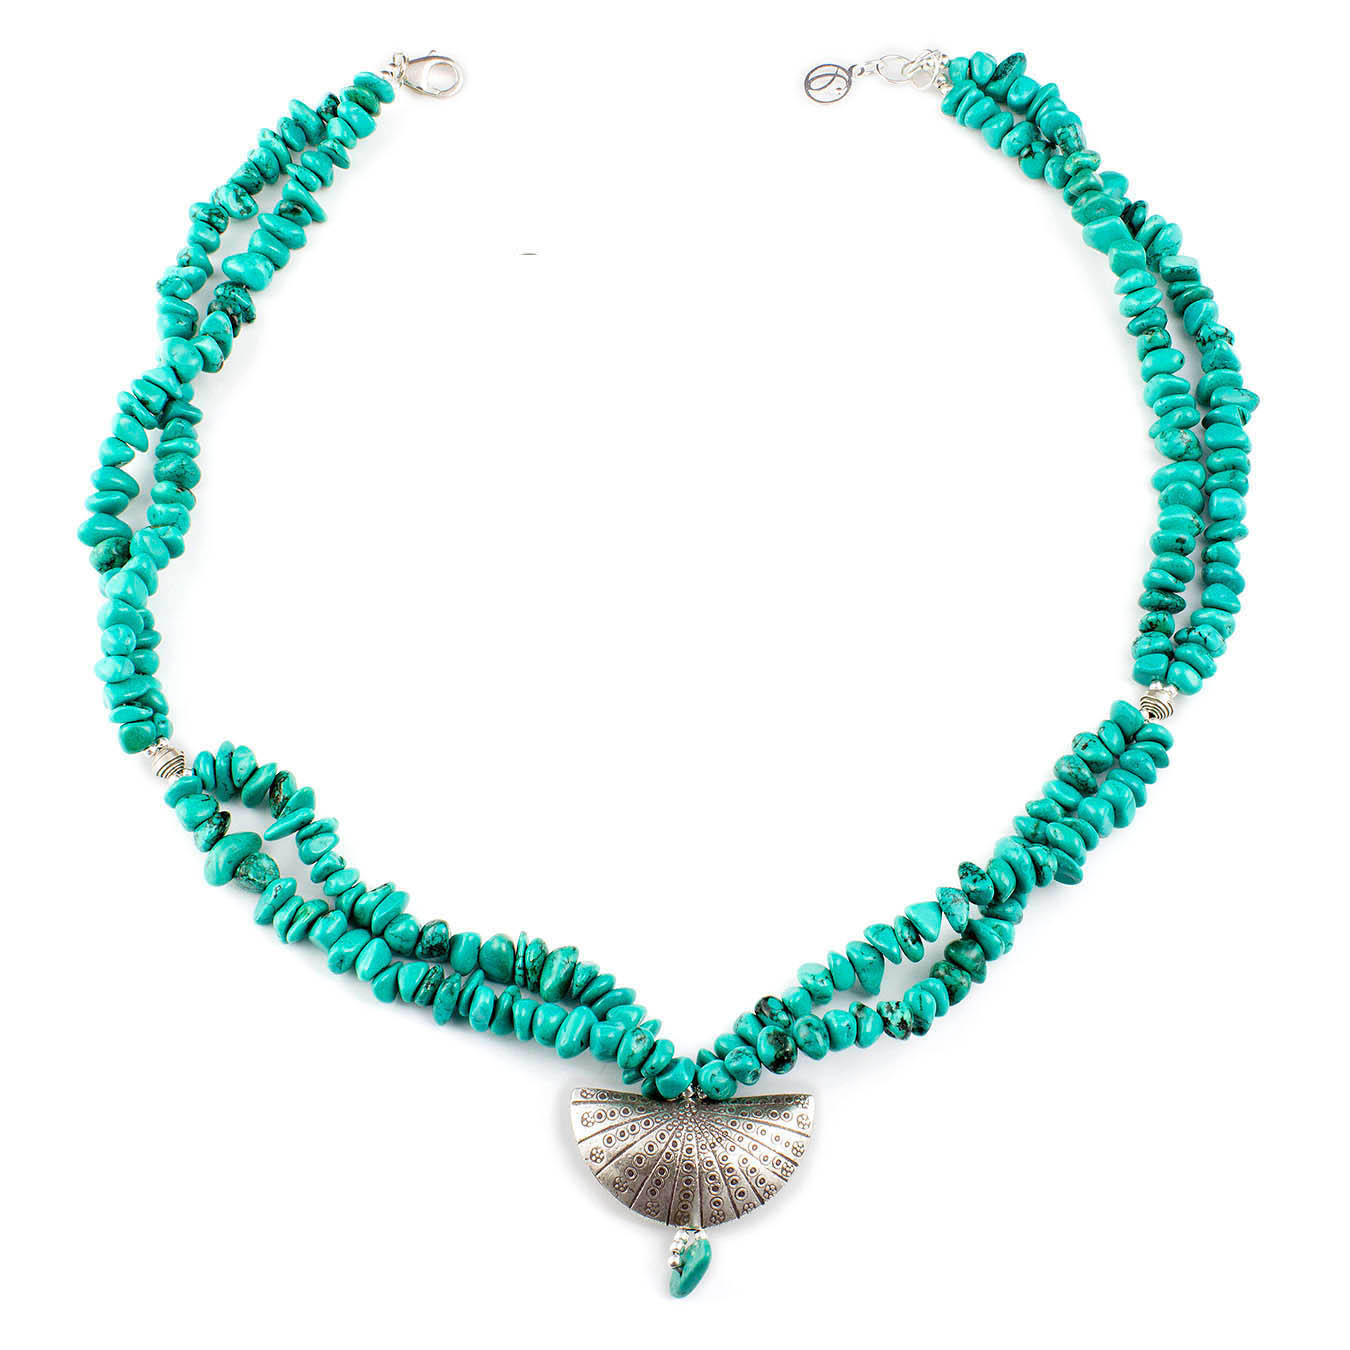 Handcrafted artisan birthstone jewelry with turquoise and Thai silver